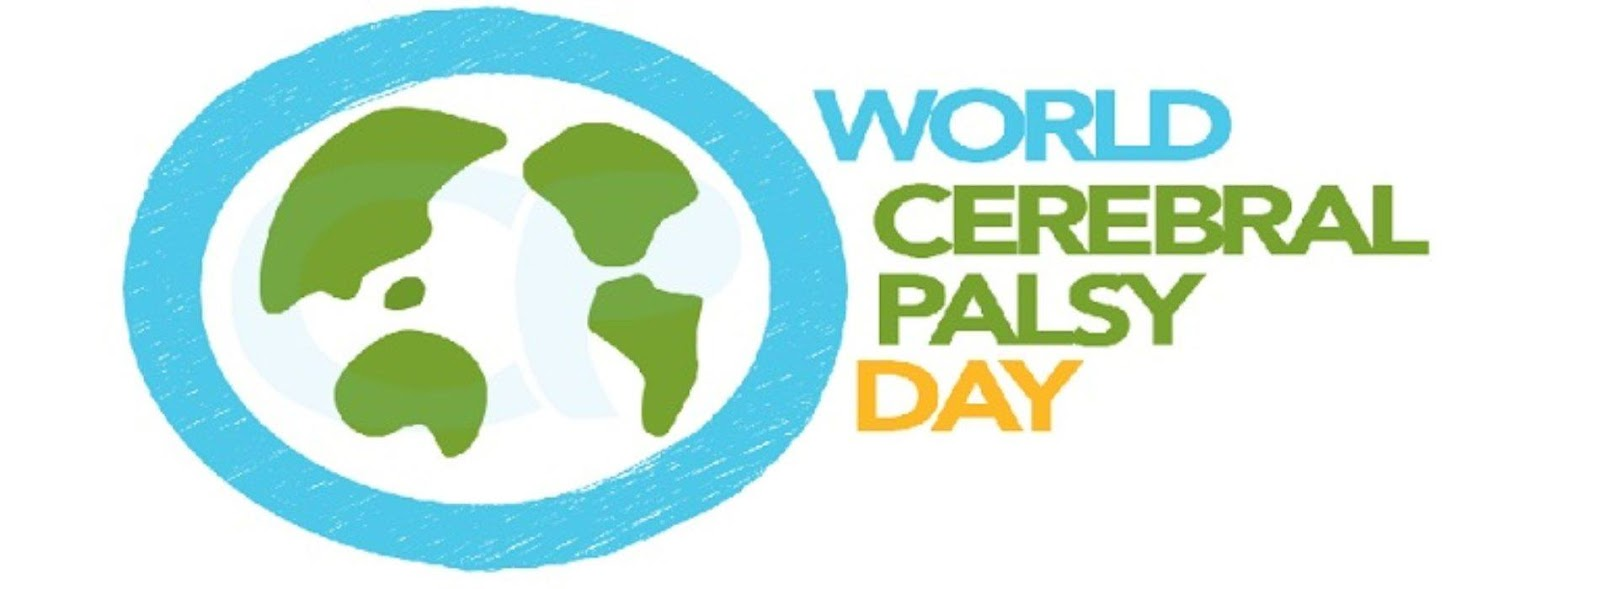 World Cerebral Palsy Day Wishes Beautiful Image